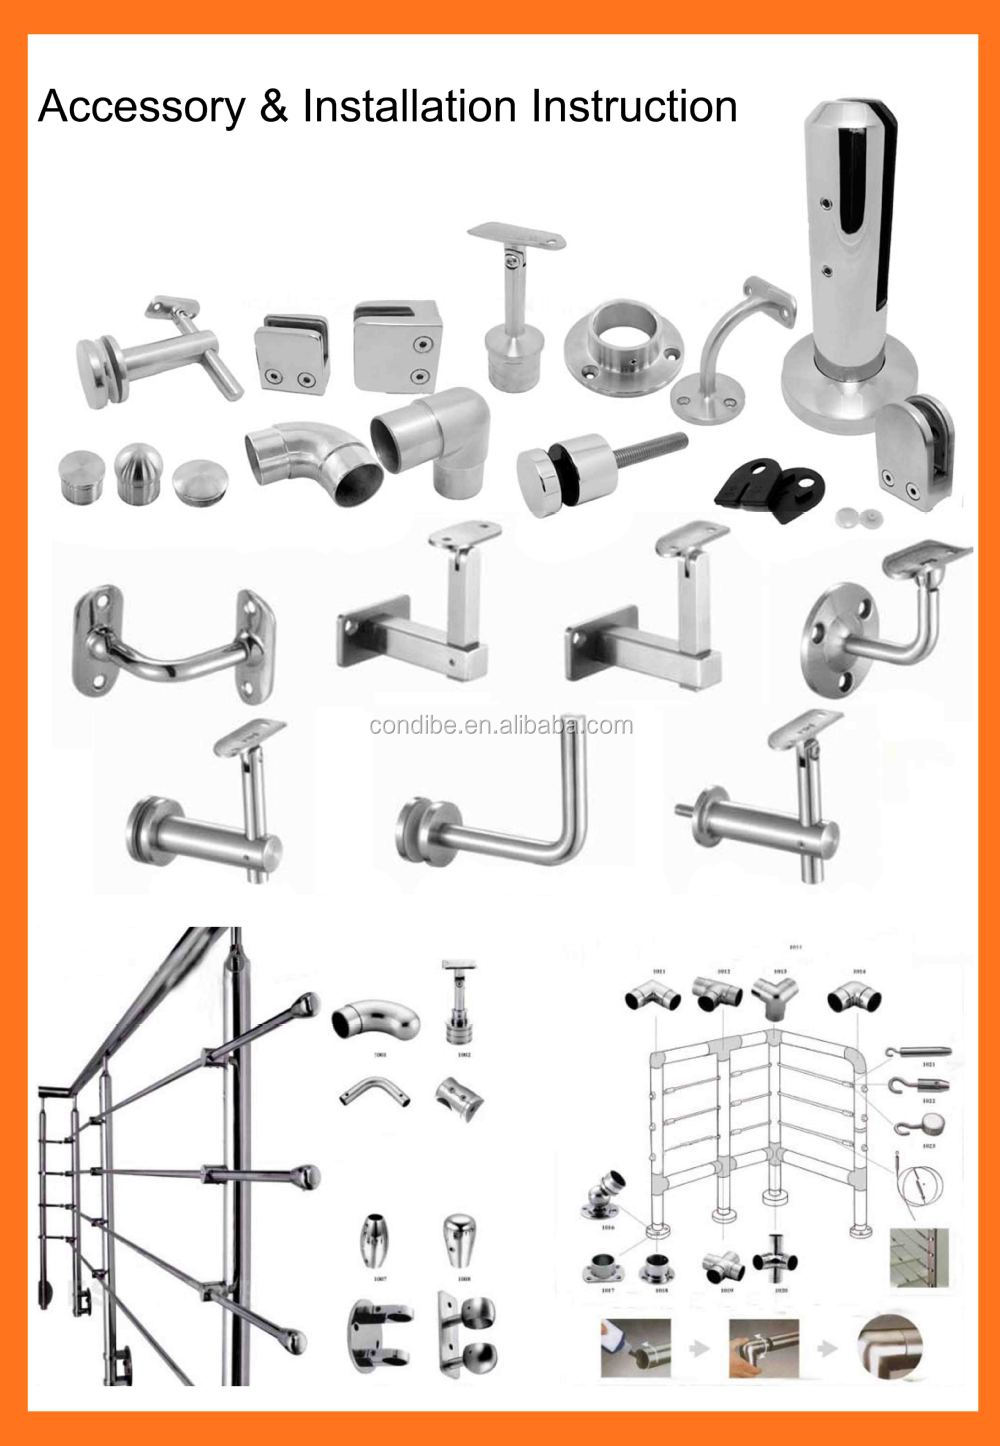 8Handrail Accessory & Installation Instruction.jpg